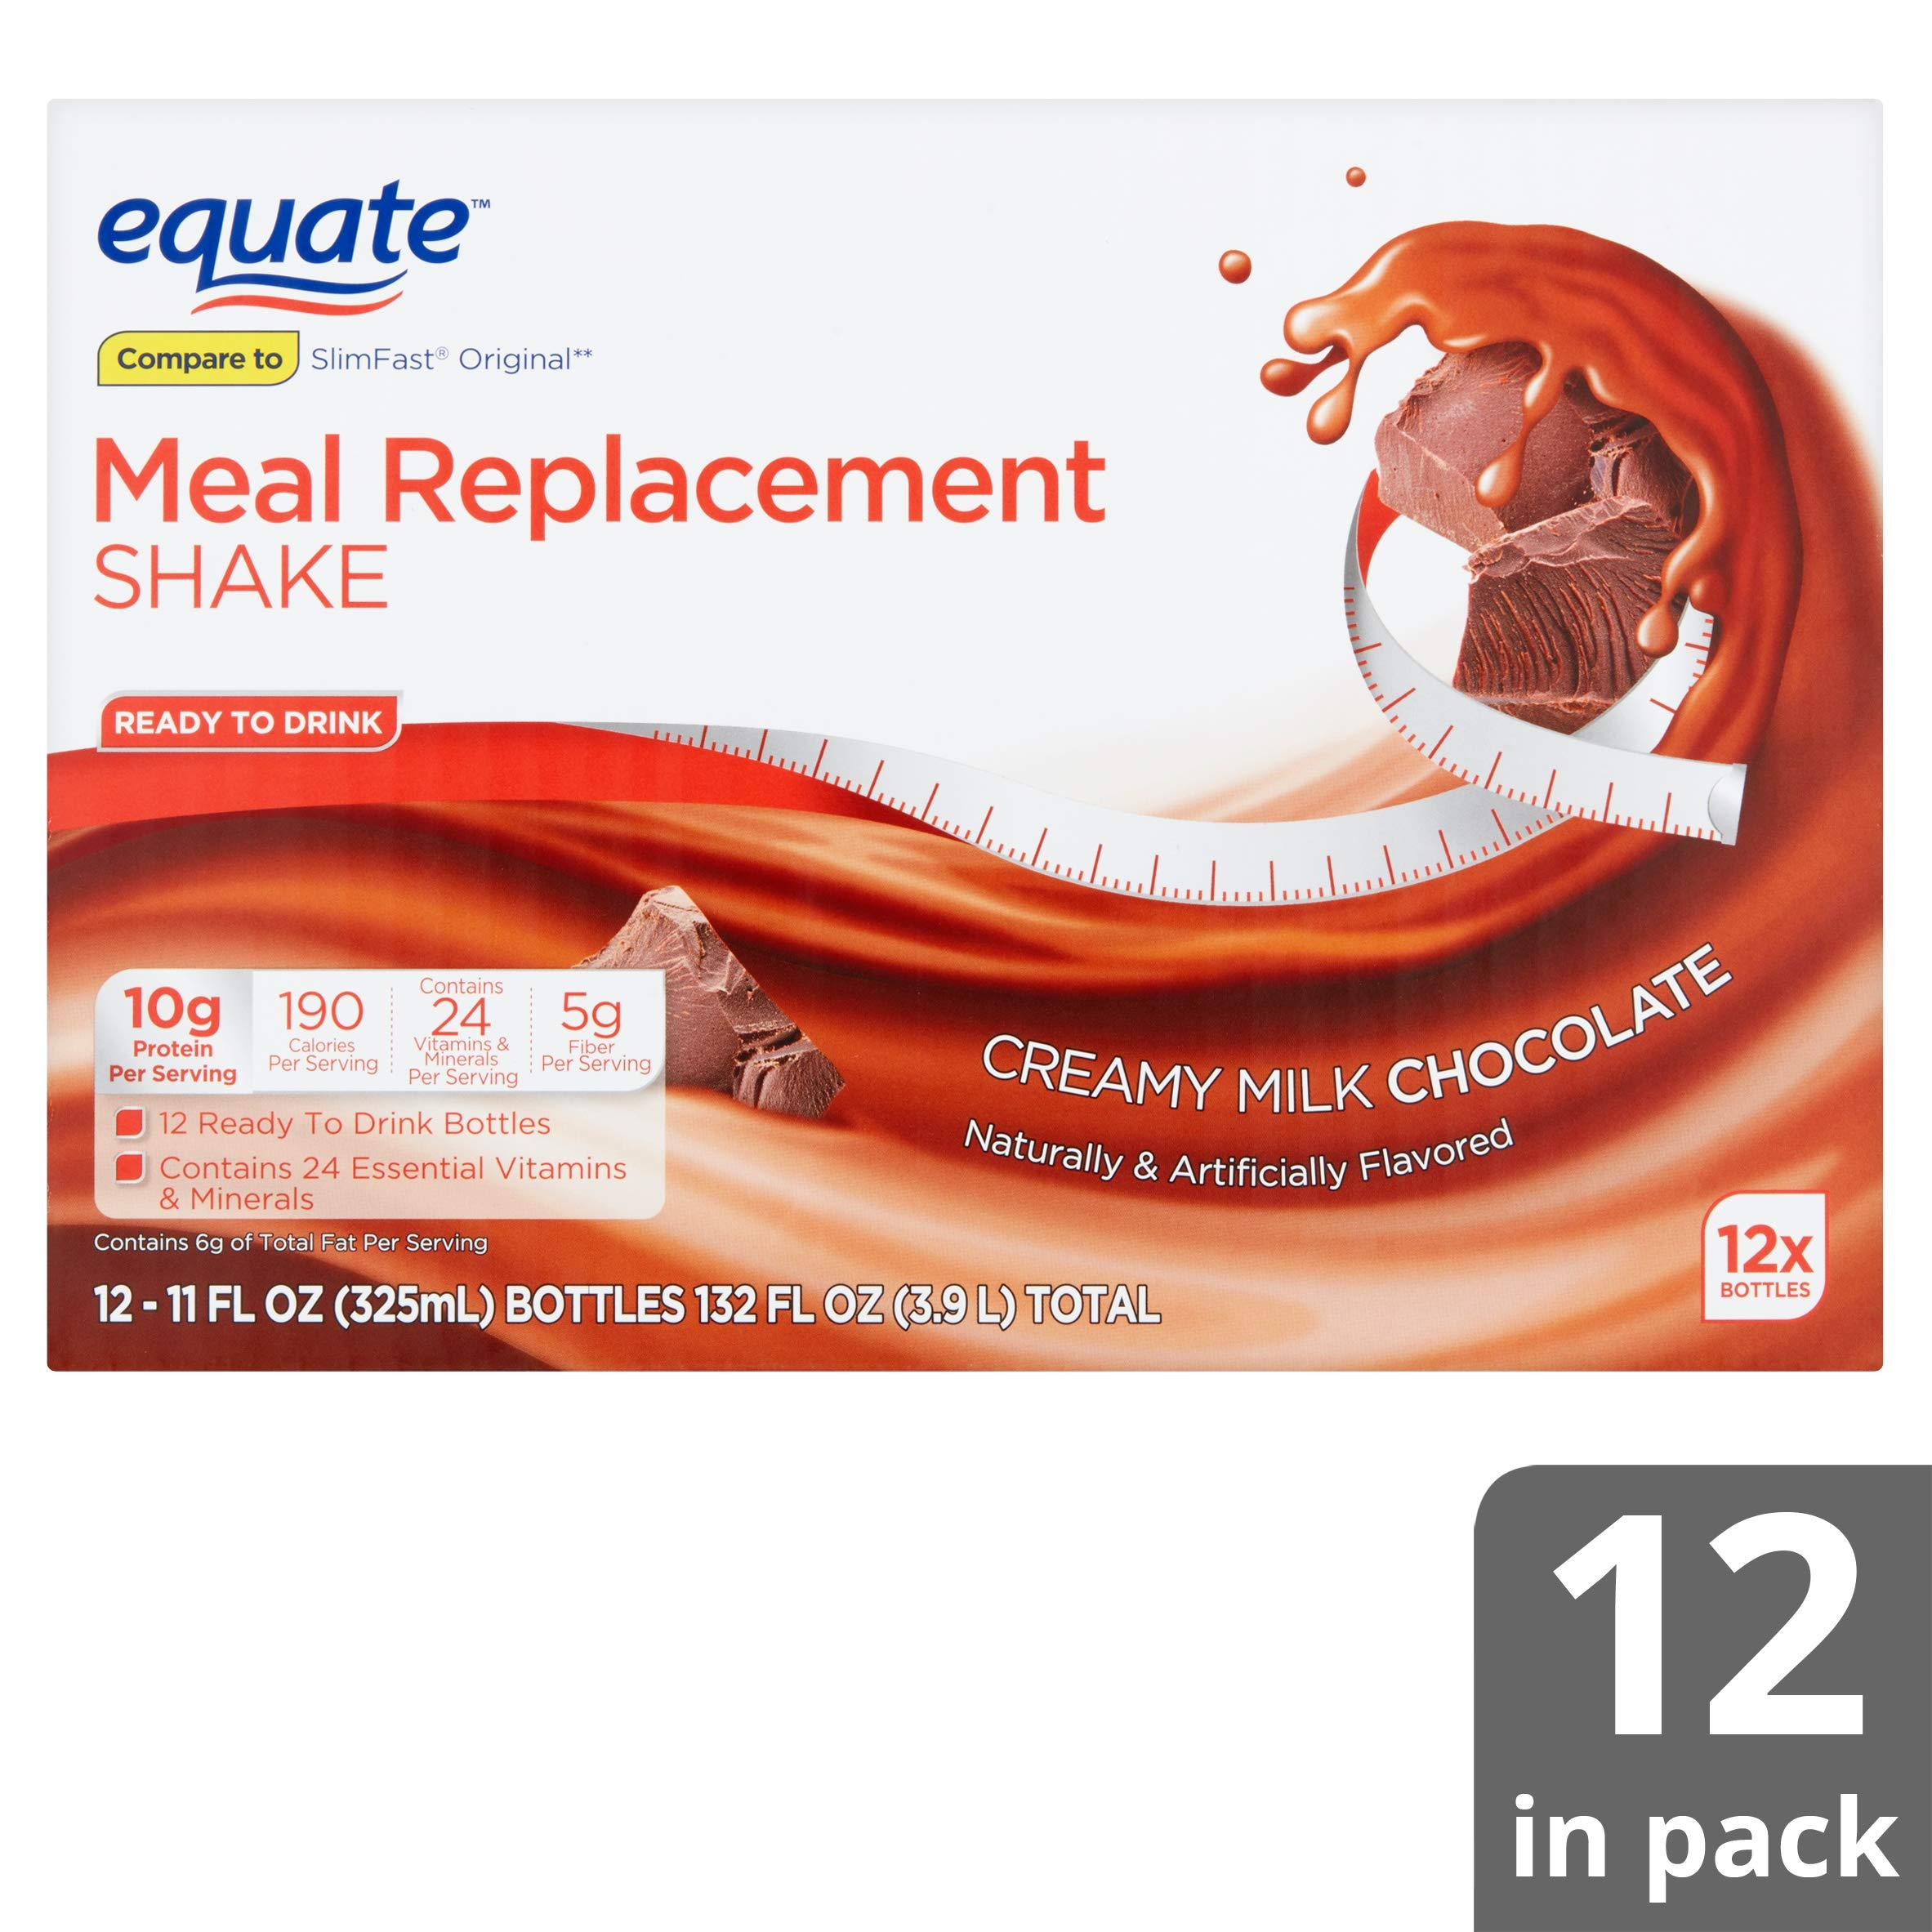 Equate Meal Replacement Shake, Creamy Milk Chocolate, 11 fl oz, 12 Count (Pack of 6) by Equate's (Image #1)